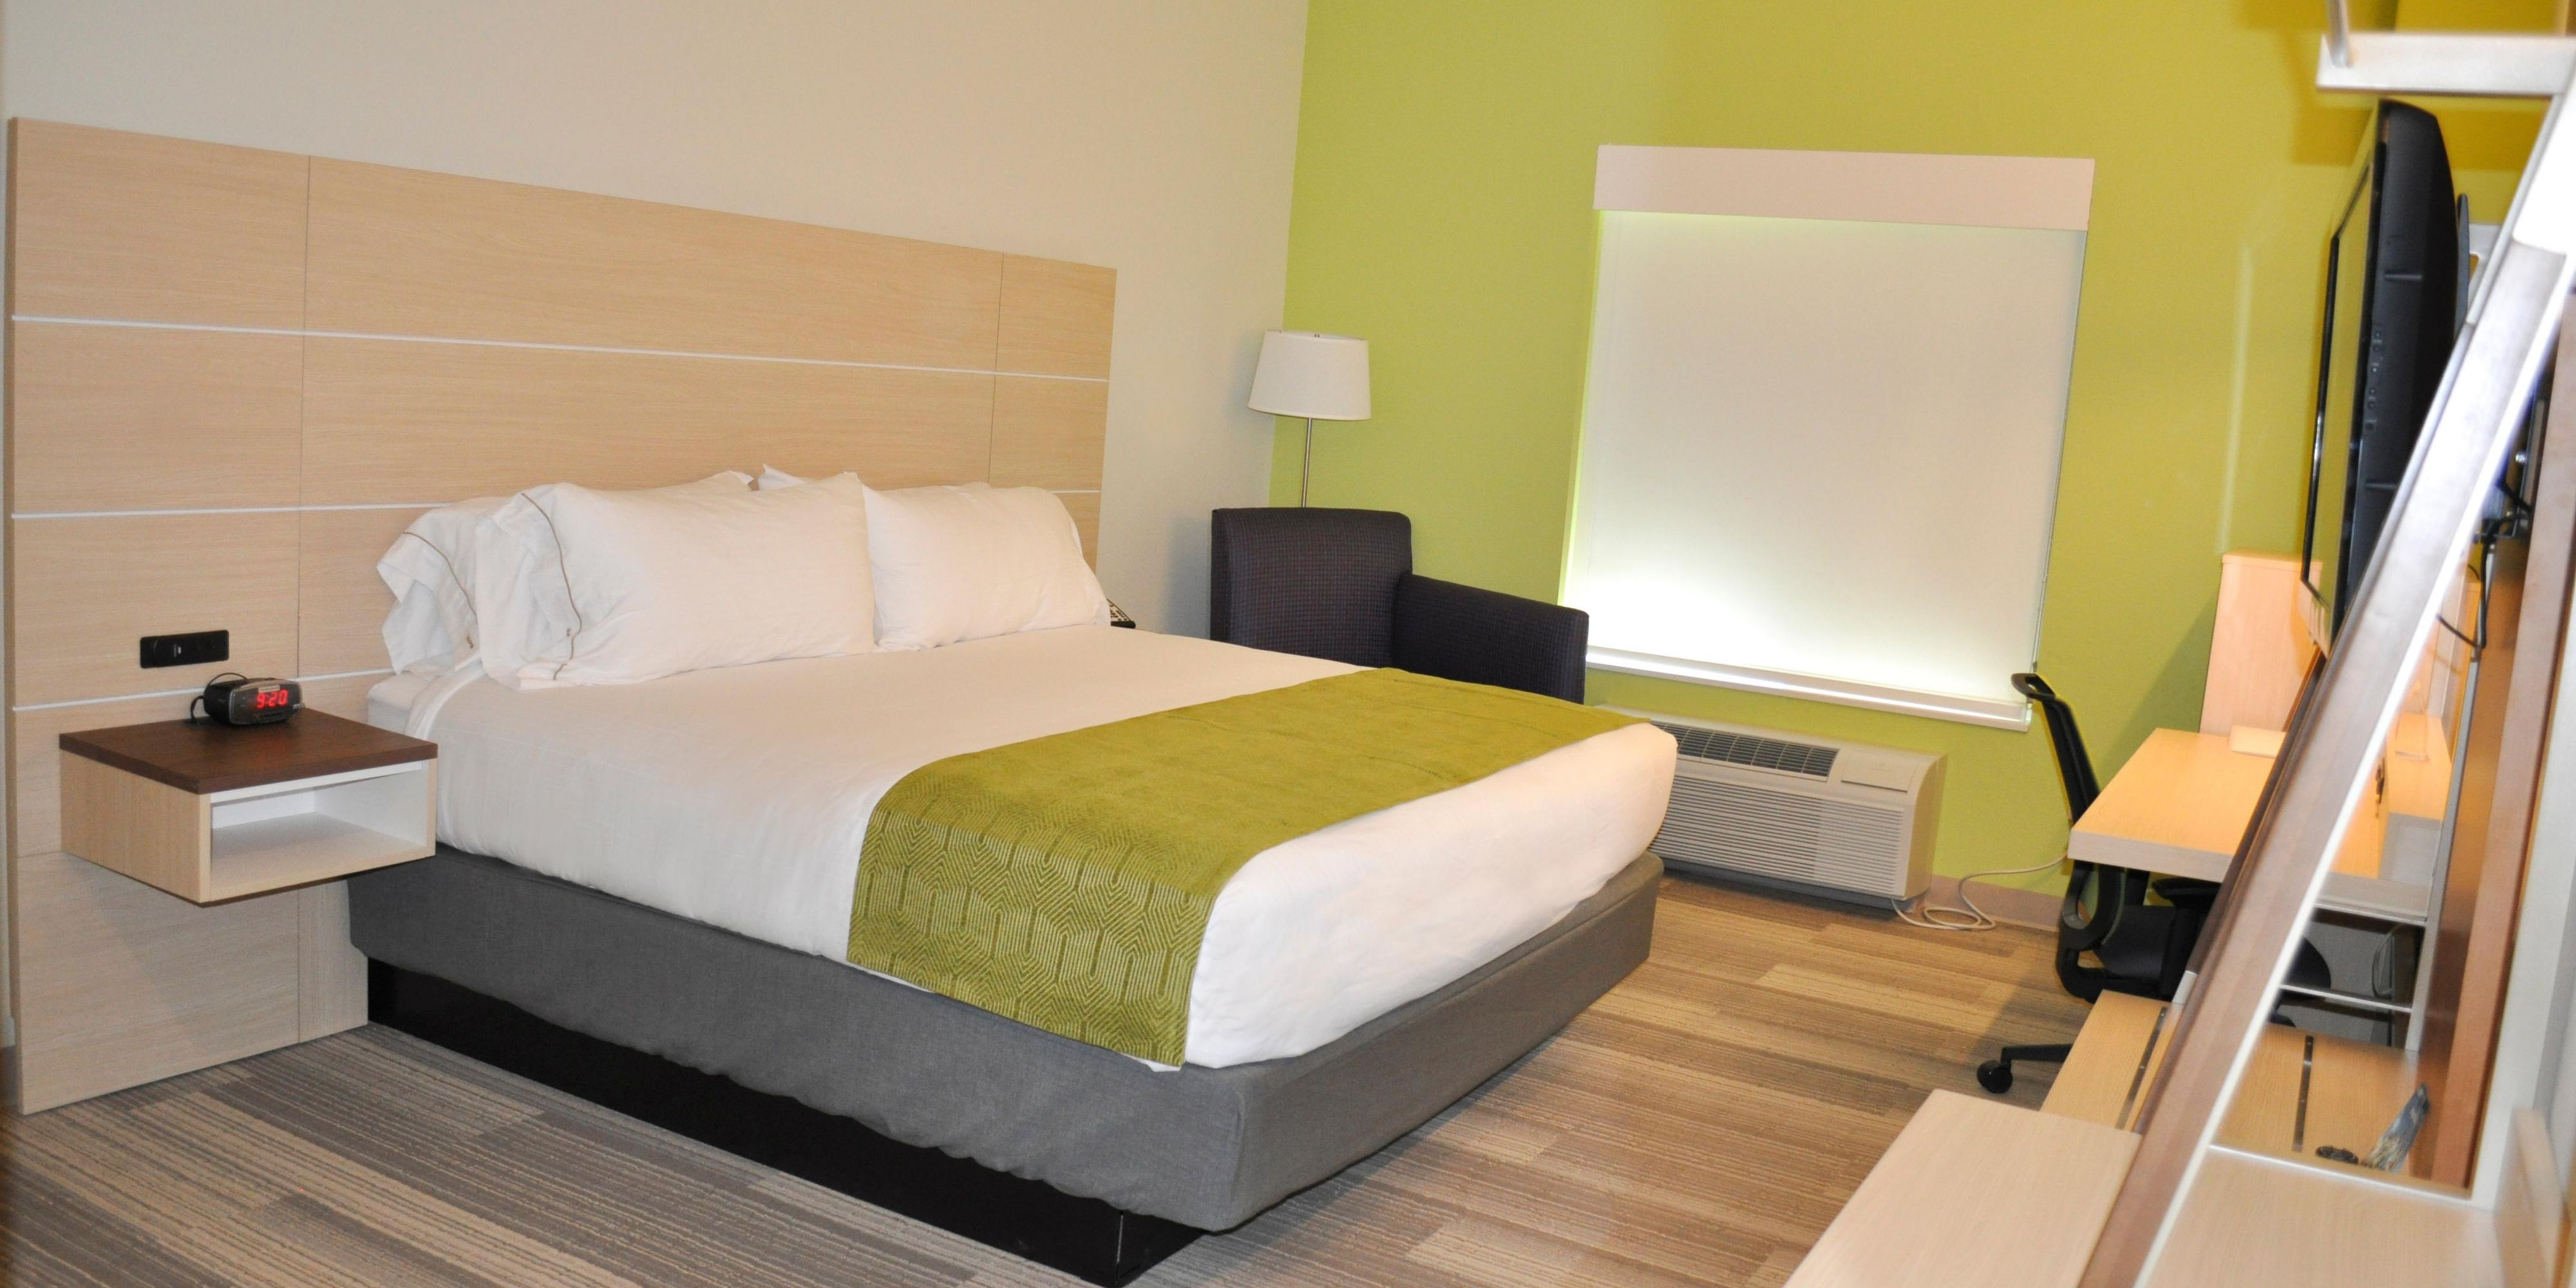 holiday-inn-express-and-suites-price-3646225036-2x1